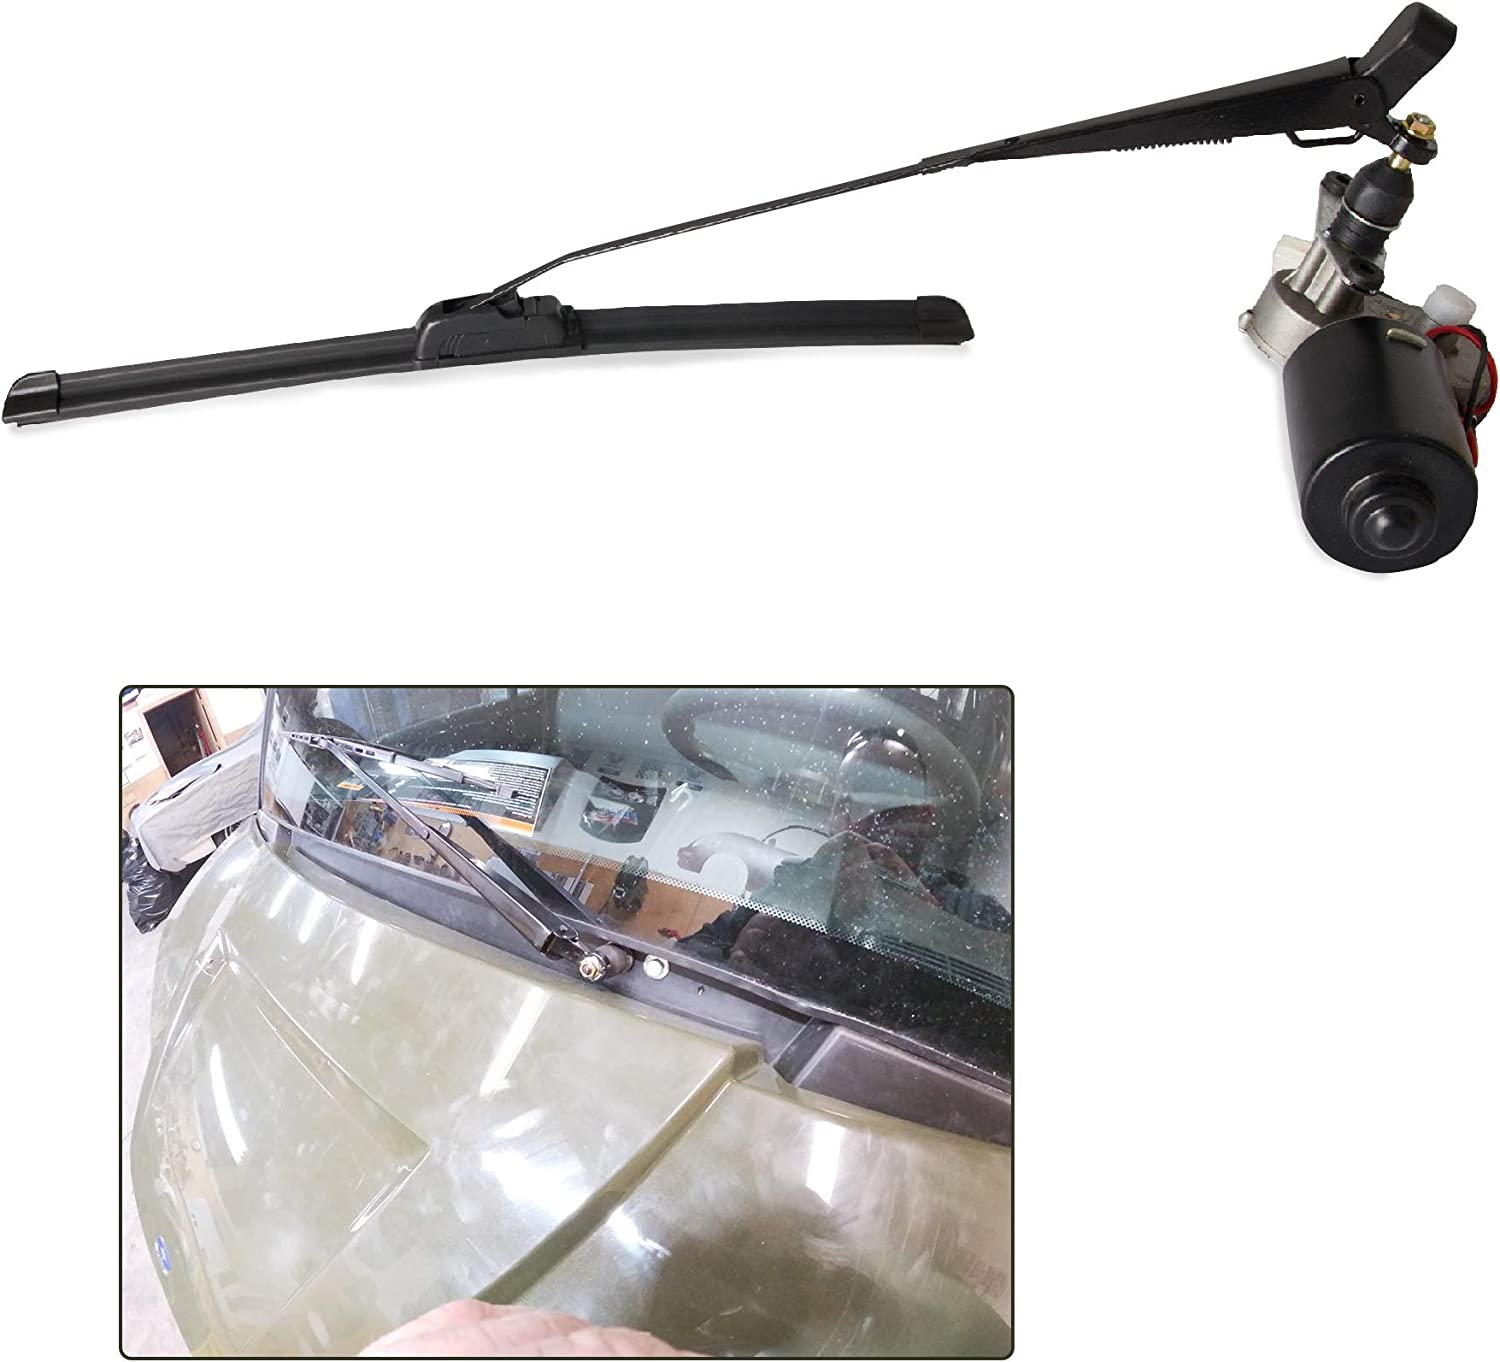 Tepeng Universal 12V Electric UTV Hard Coated Polycarbonat Windshield Wiper Motor windshield Wiper Kit Compatible with Polaris Ranger RZR 900 1000 Can Am etc.